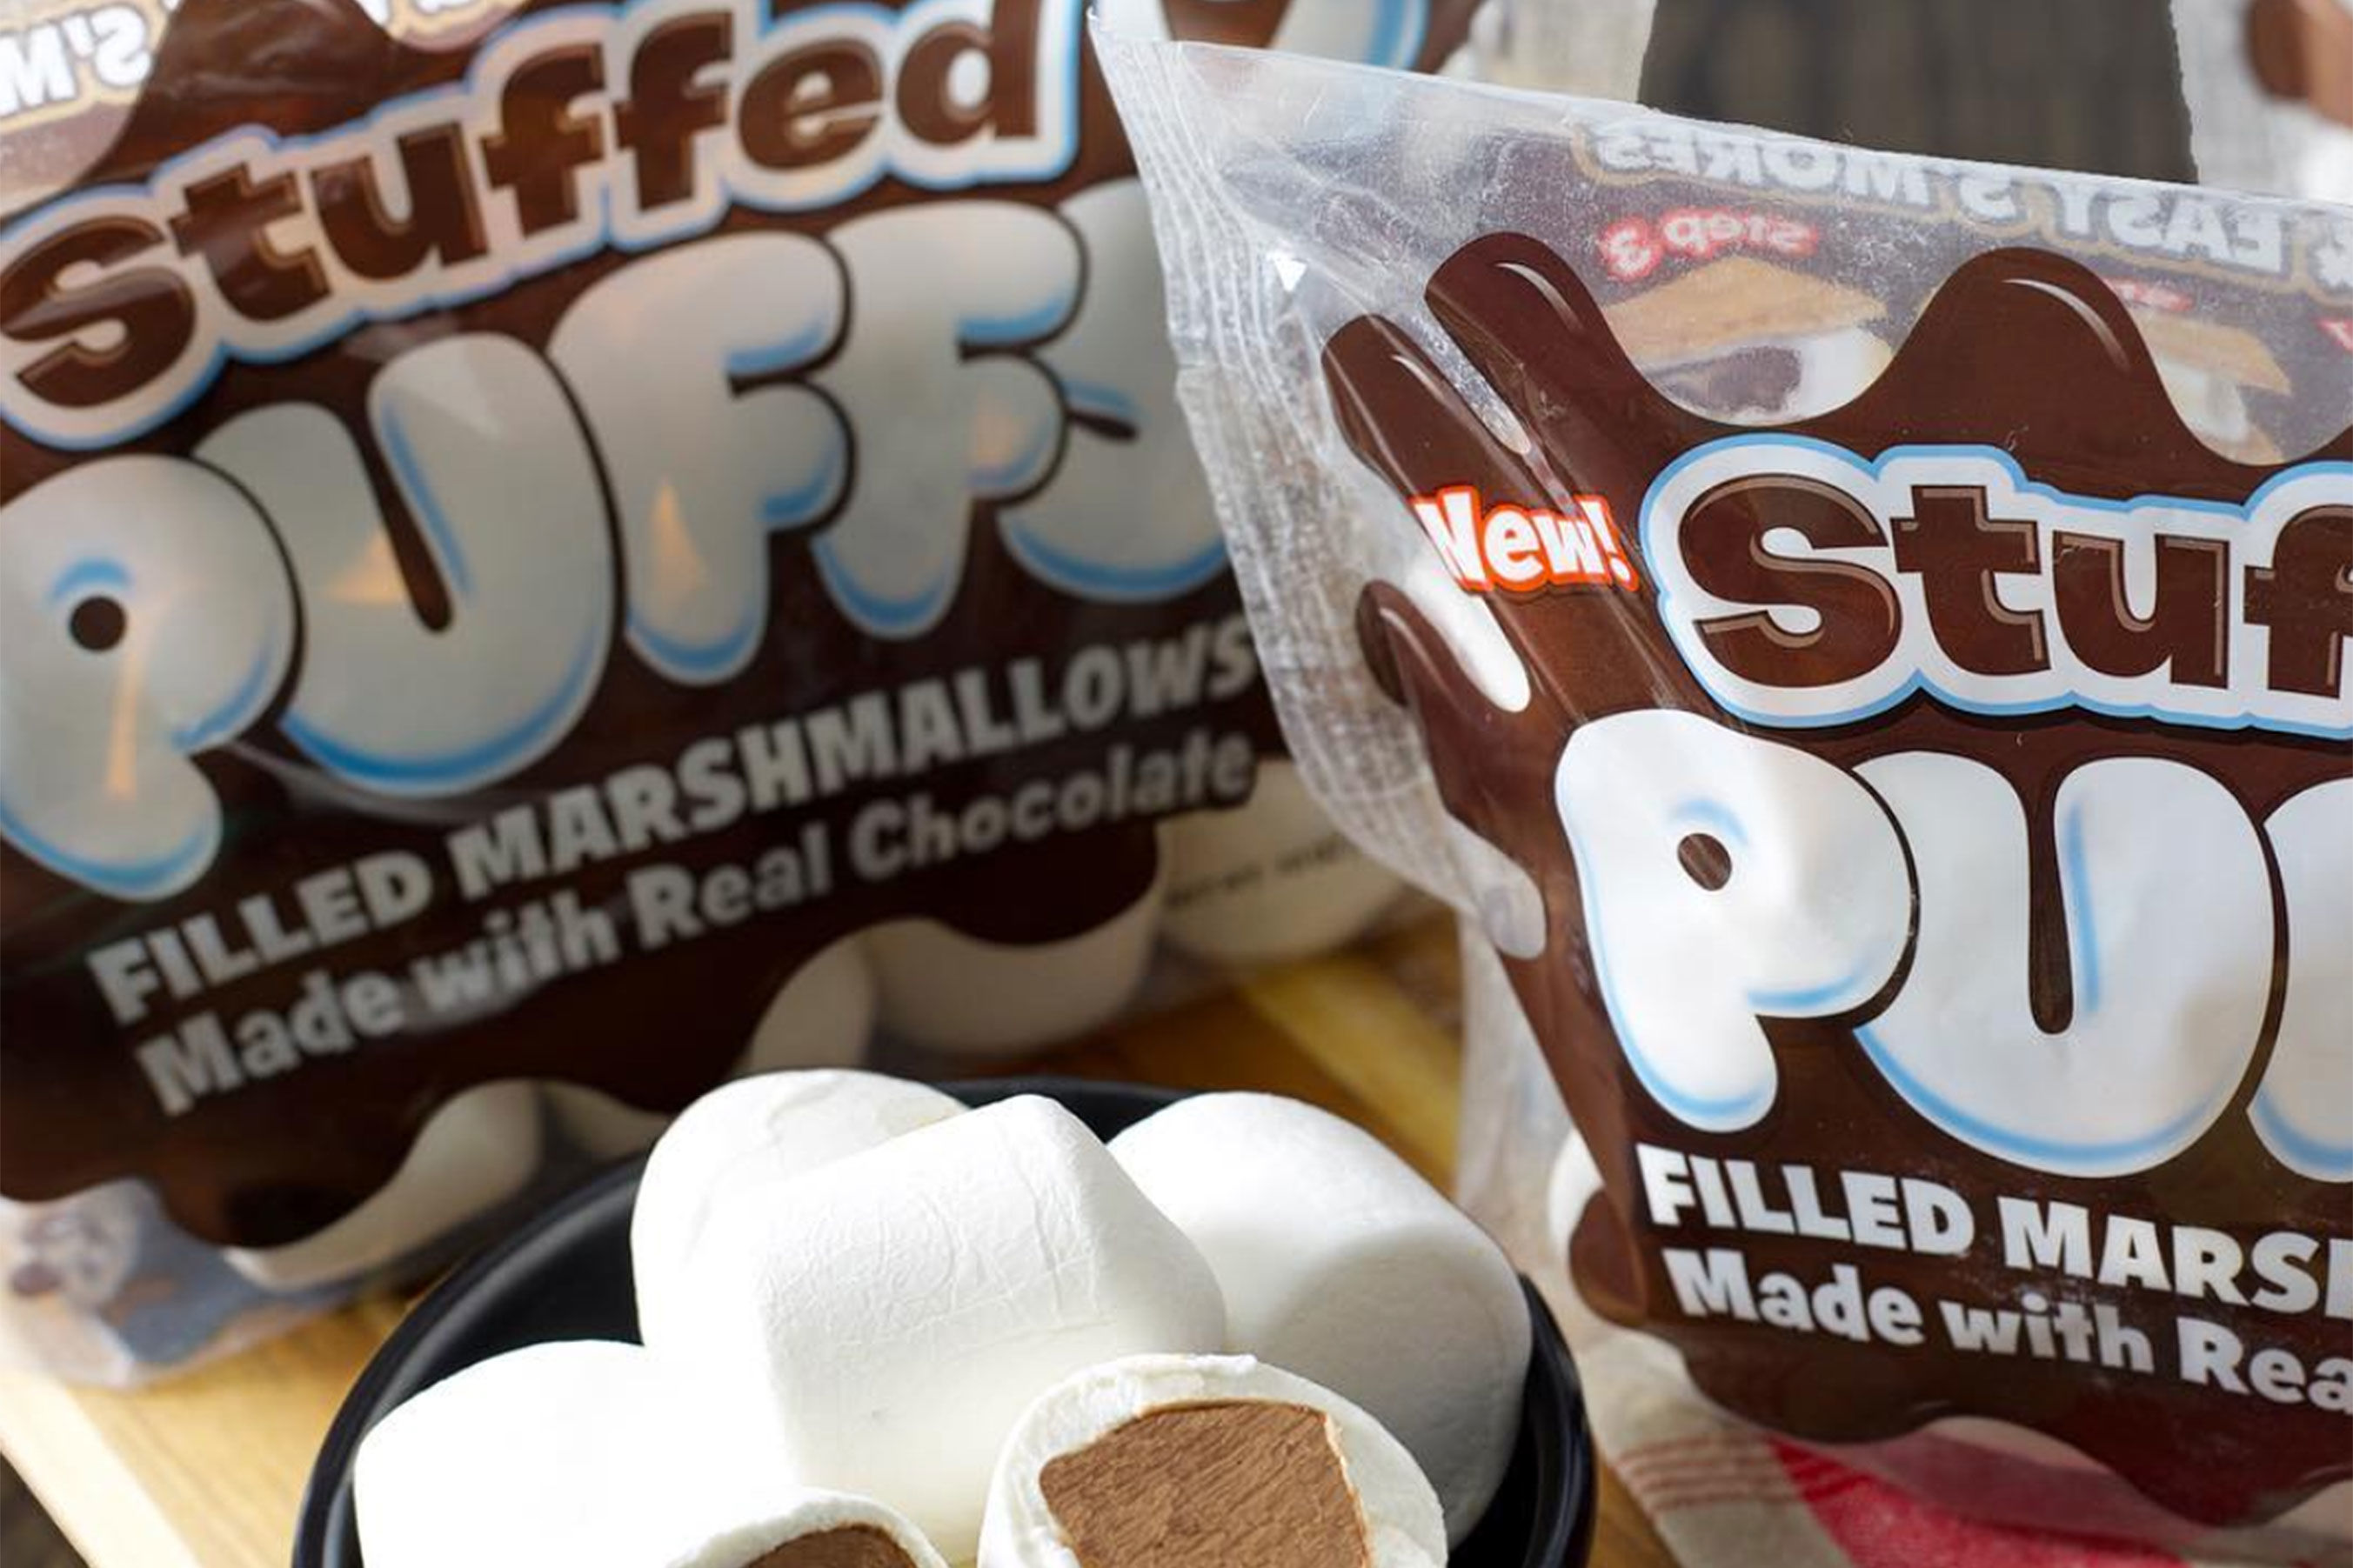 Chocolate-Stuffed Marshmallows Are Almost Here, and S'mores Will Never Be The Same